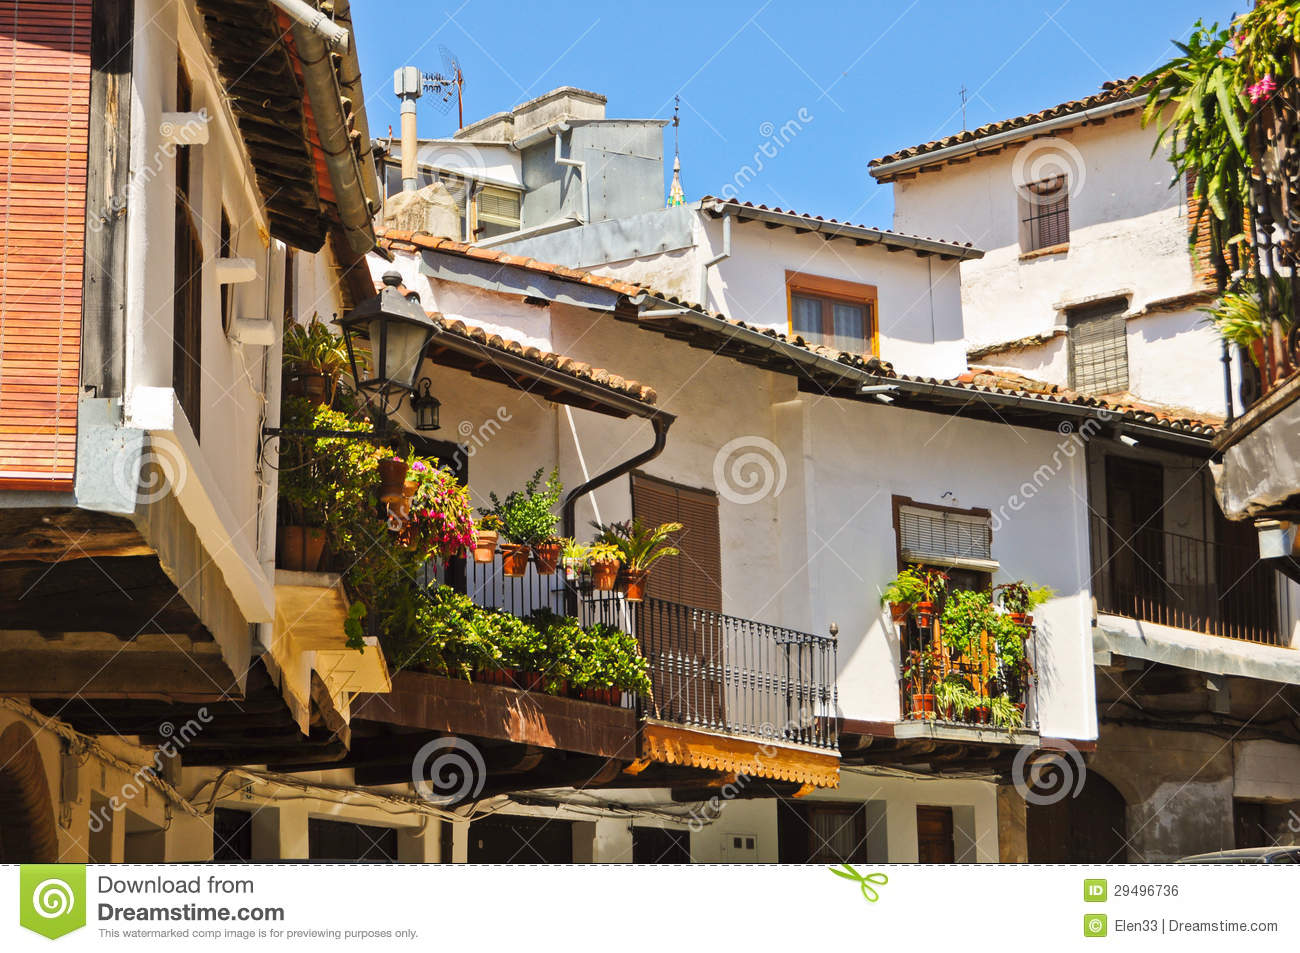 Balcony royalty free stock image image 29496736 for Balcony in spanish